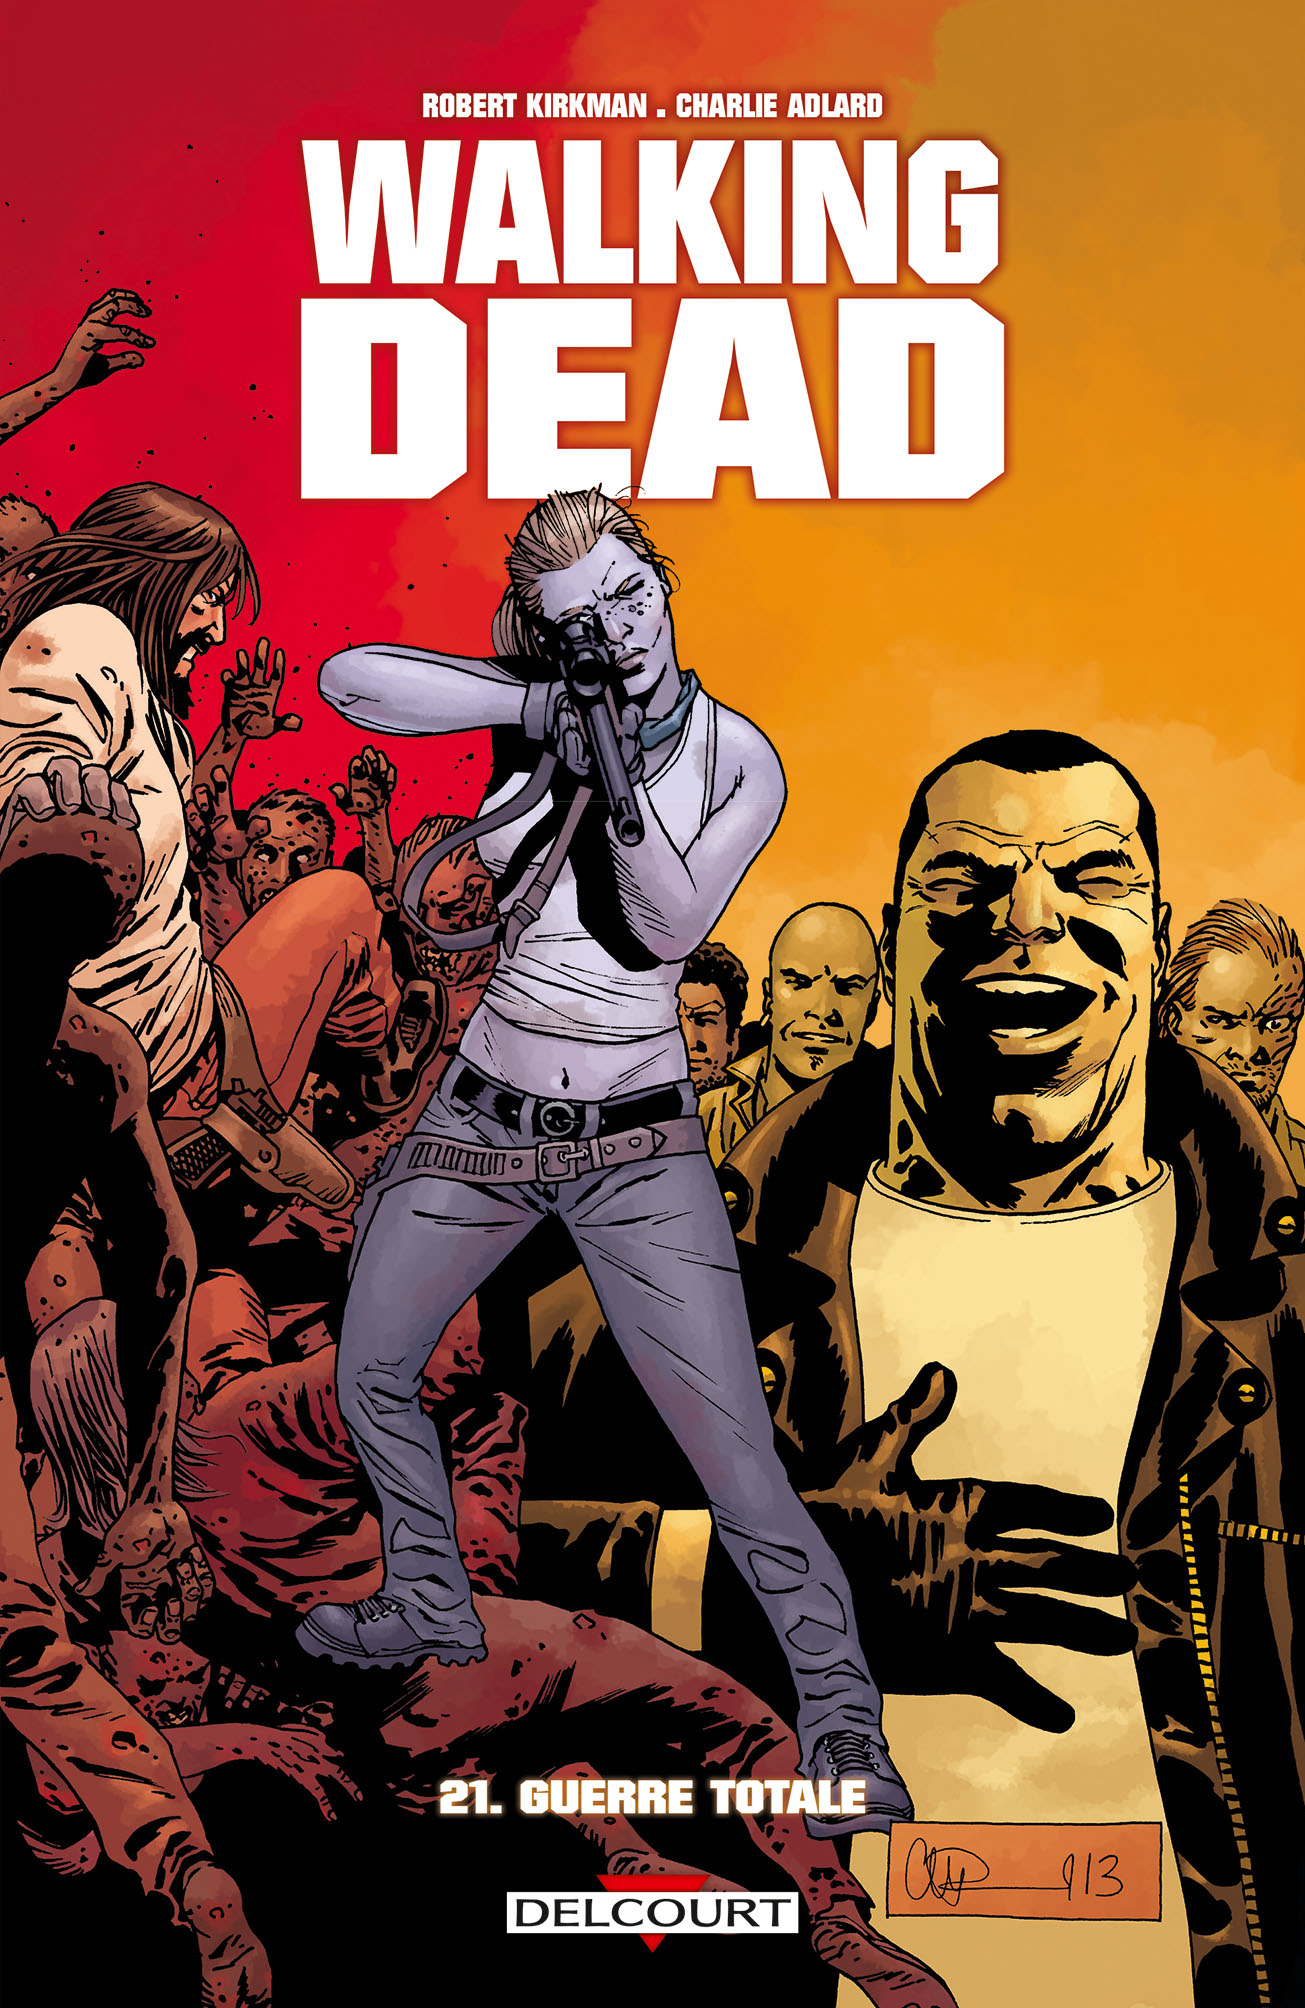 Read Comics Online Free - The Walking Dead - Chapter - Page 1